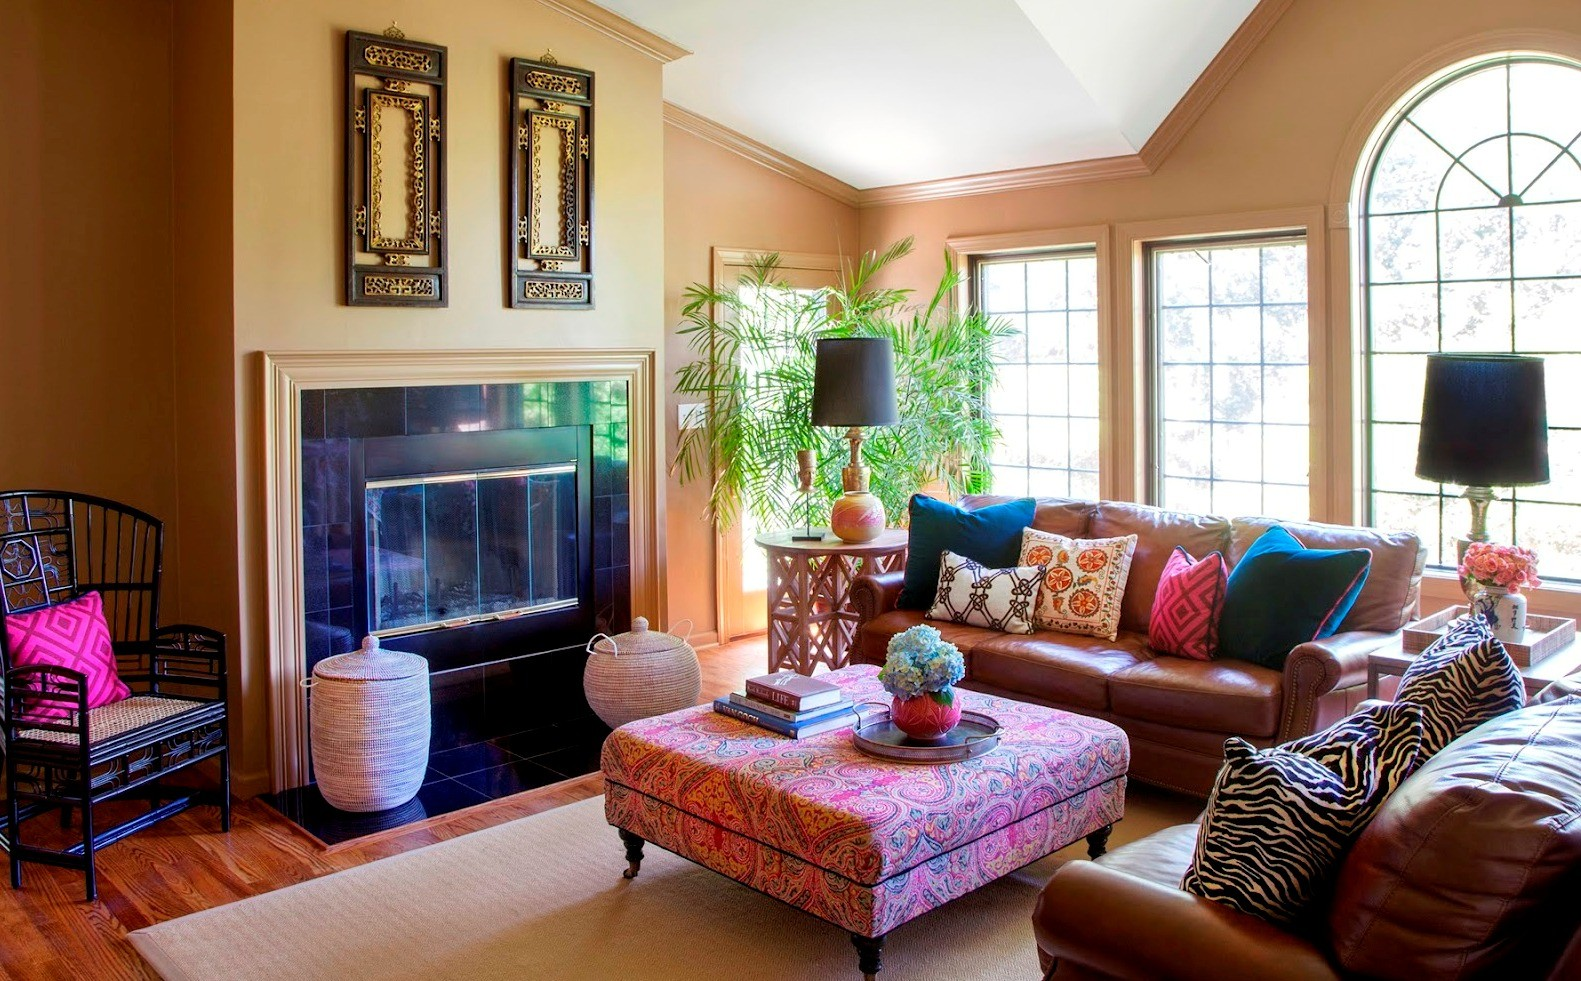 10 bohemian style living room ideas for 10 by 10 living room